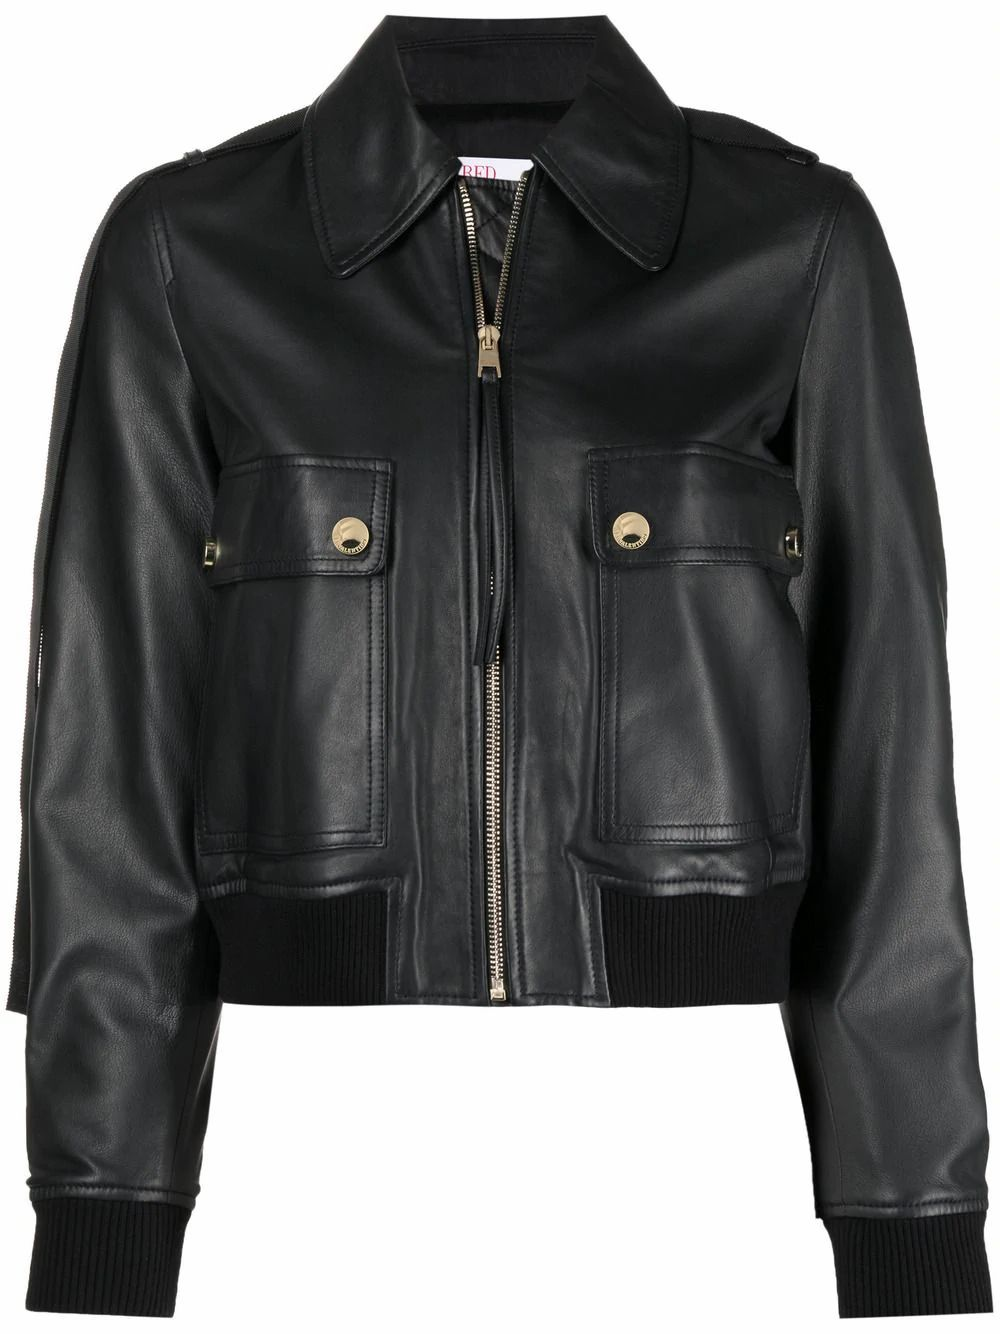 Red Valentino Leathers RED VALENTINO WOMEN'S BLACK LEATHER OUTERWEAR JACKET